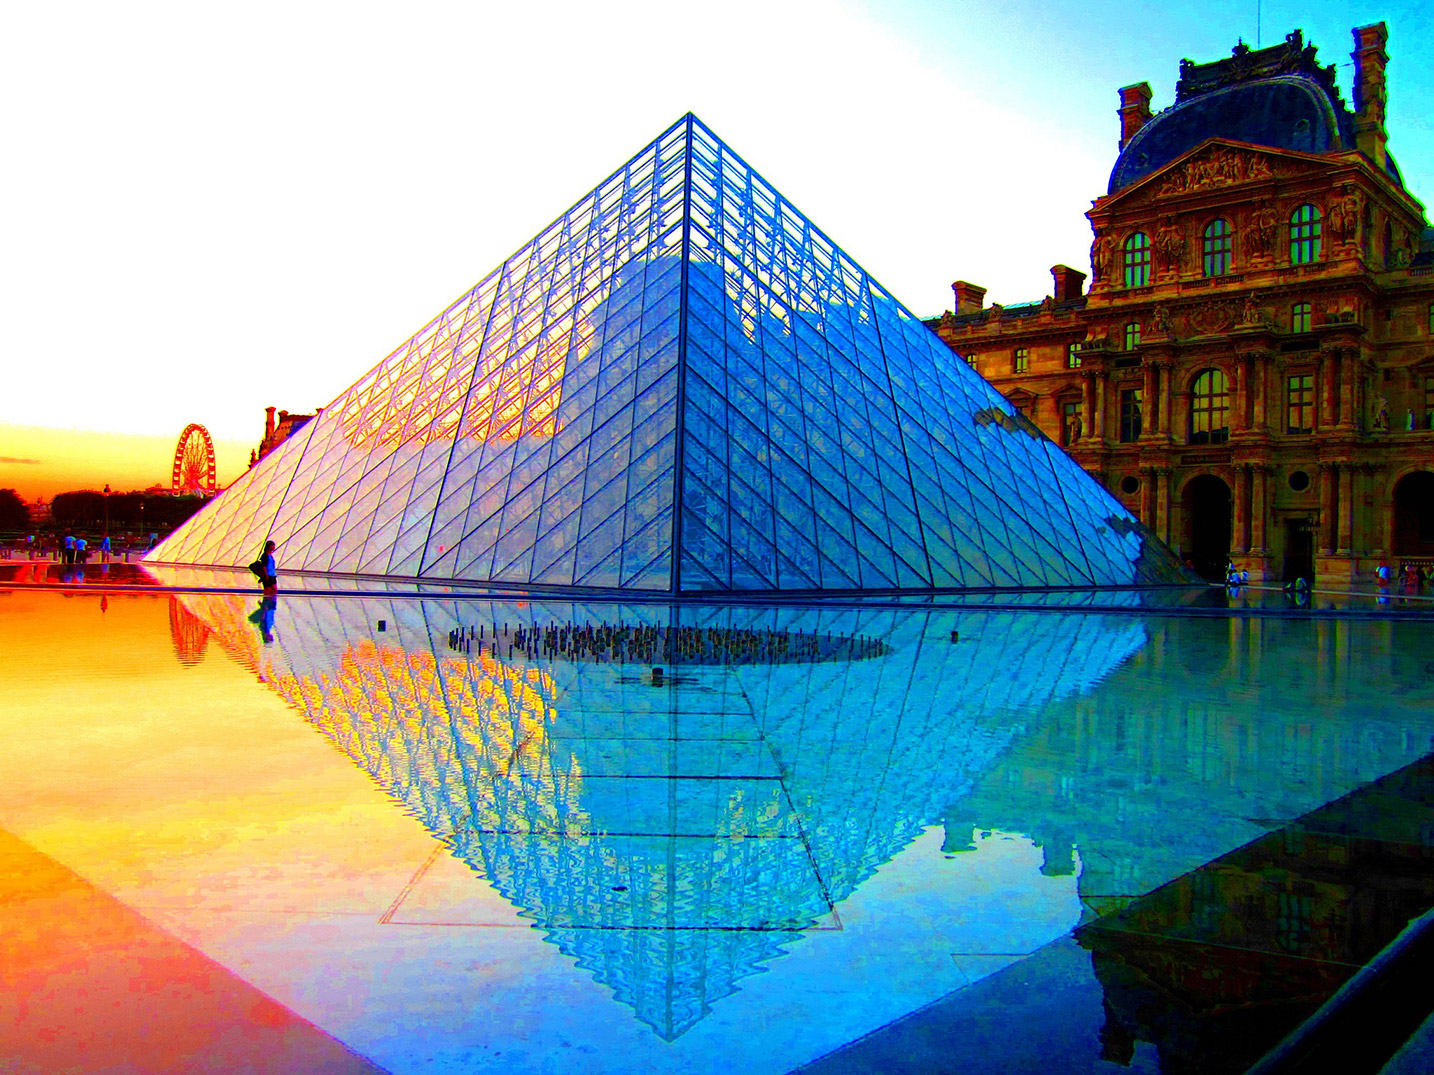 Sunset over the Louvre, Paris